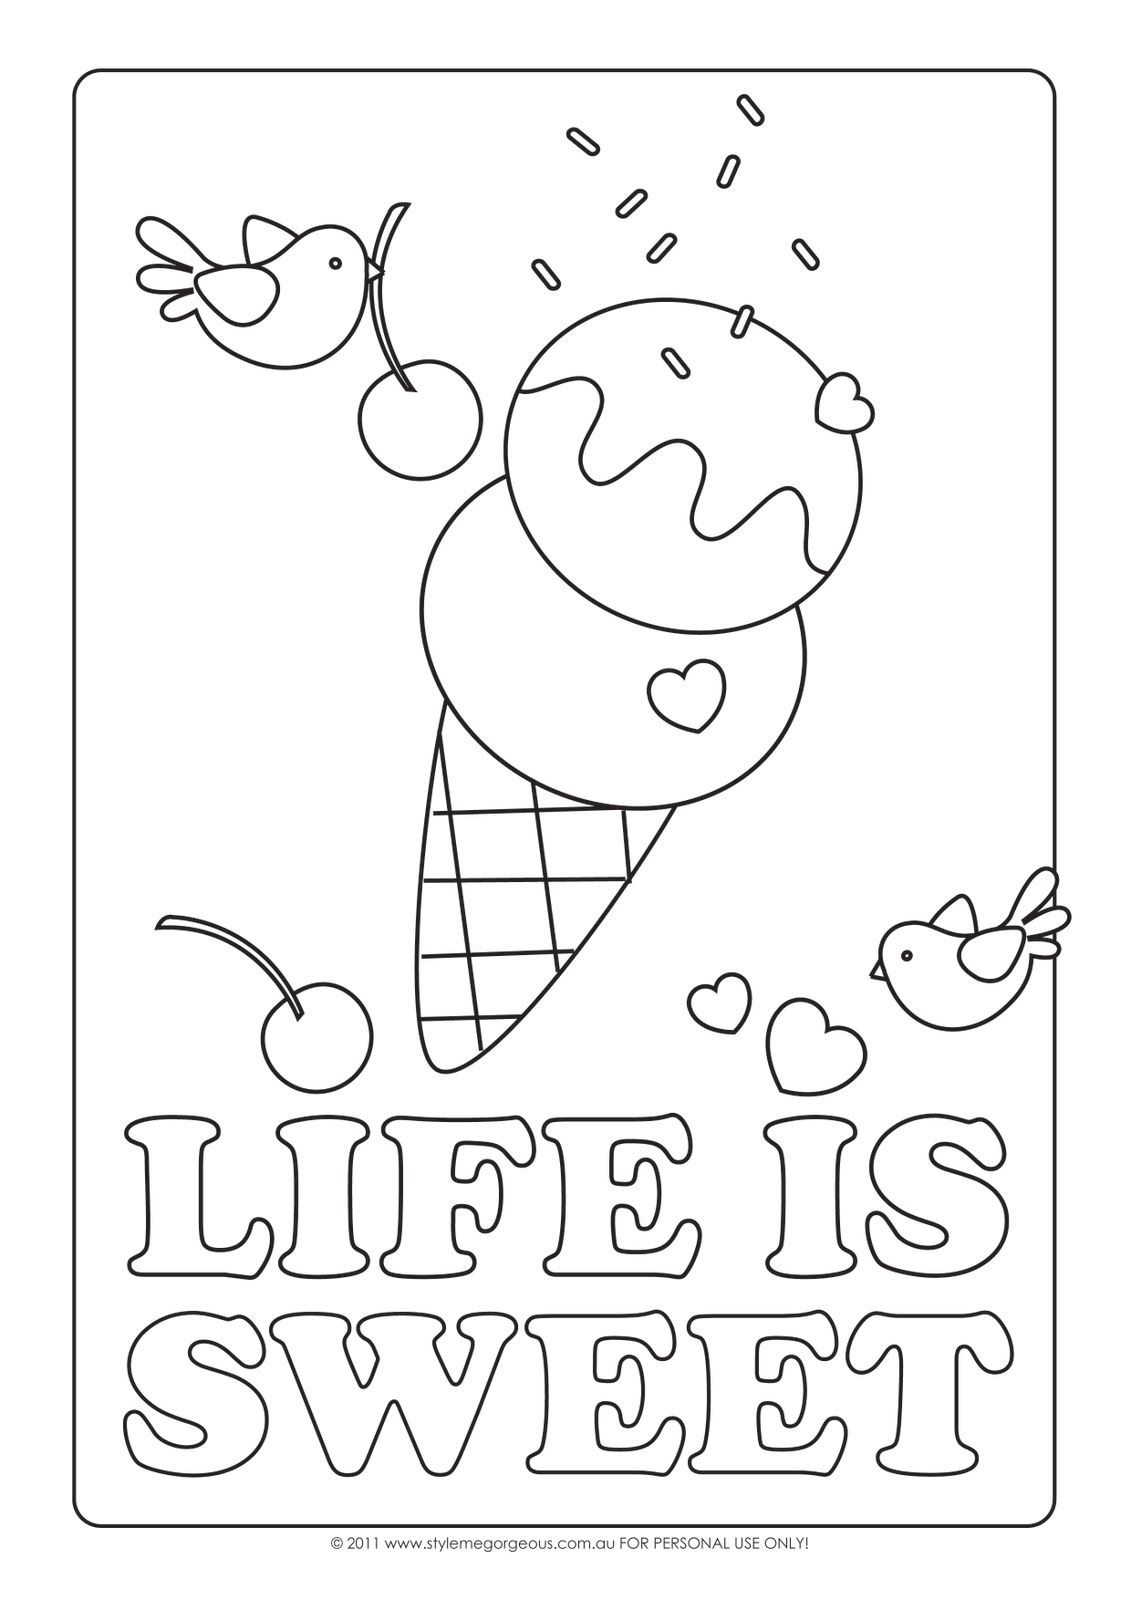 Intrepid image with regard to ice cream coloring pages printable